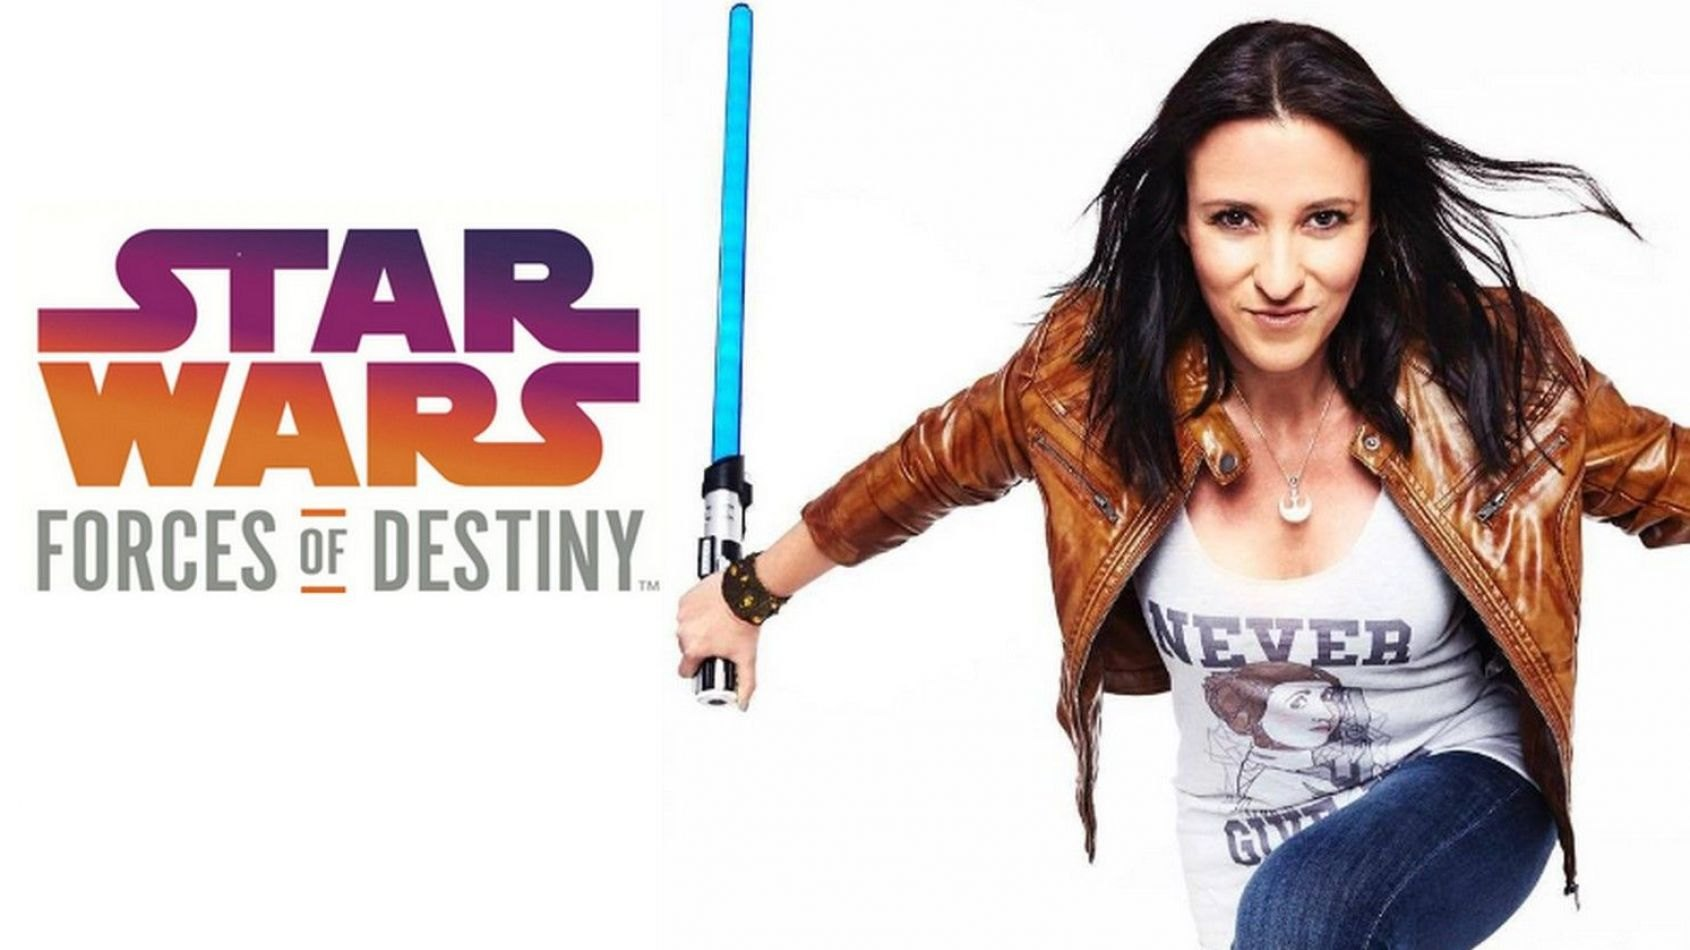 Jennifer Muro parle de Star Wars: Forces of Destiny